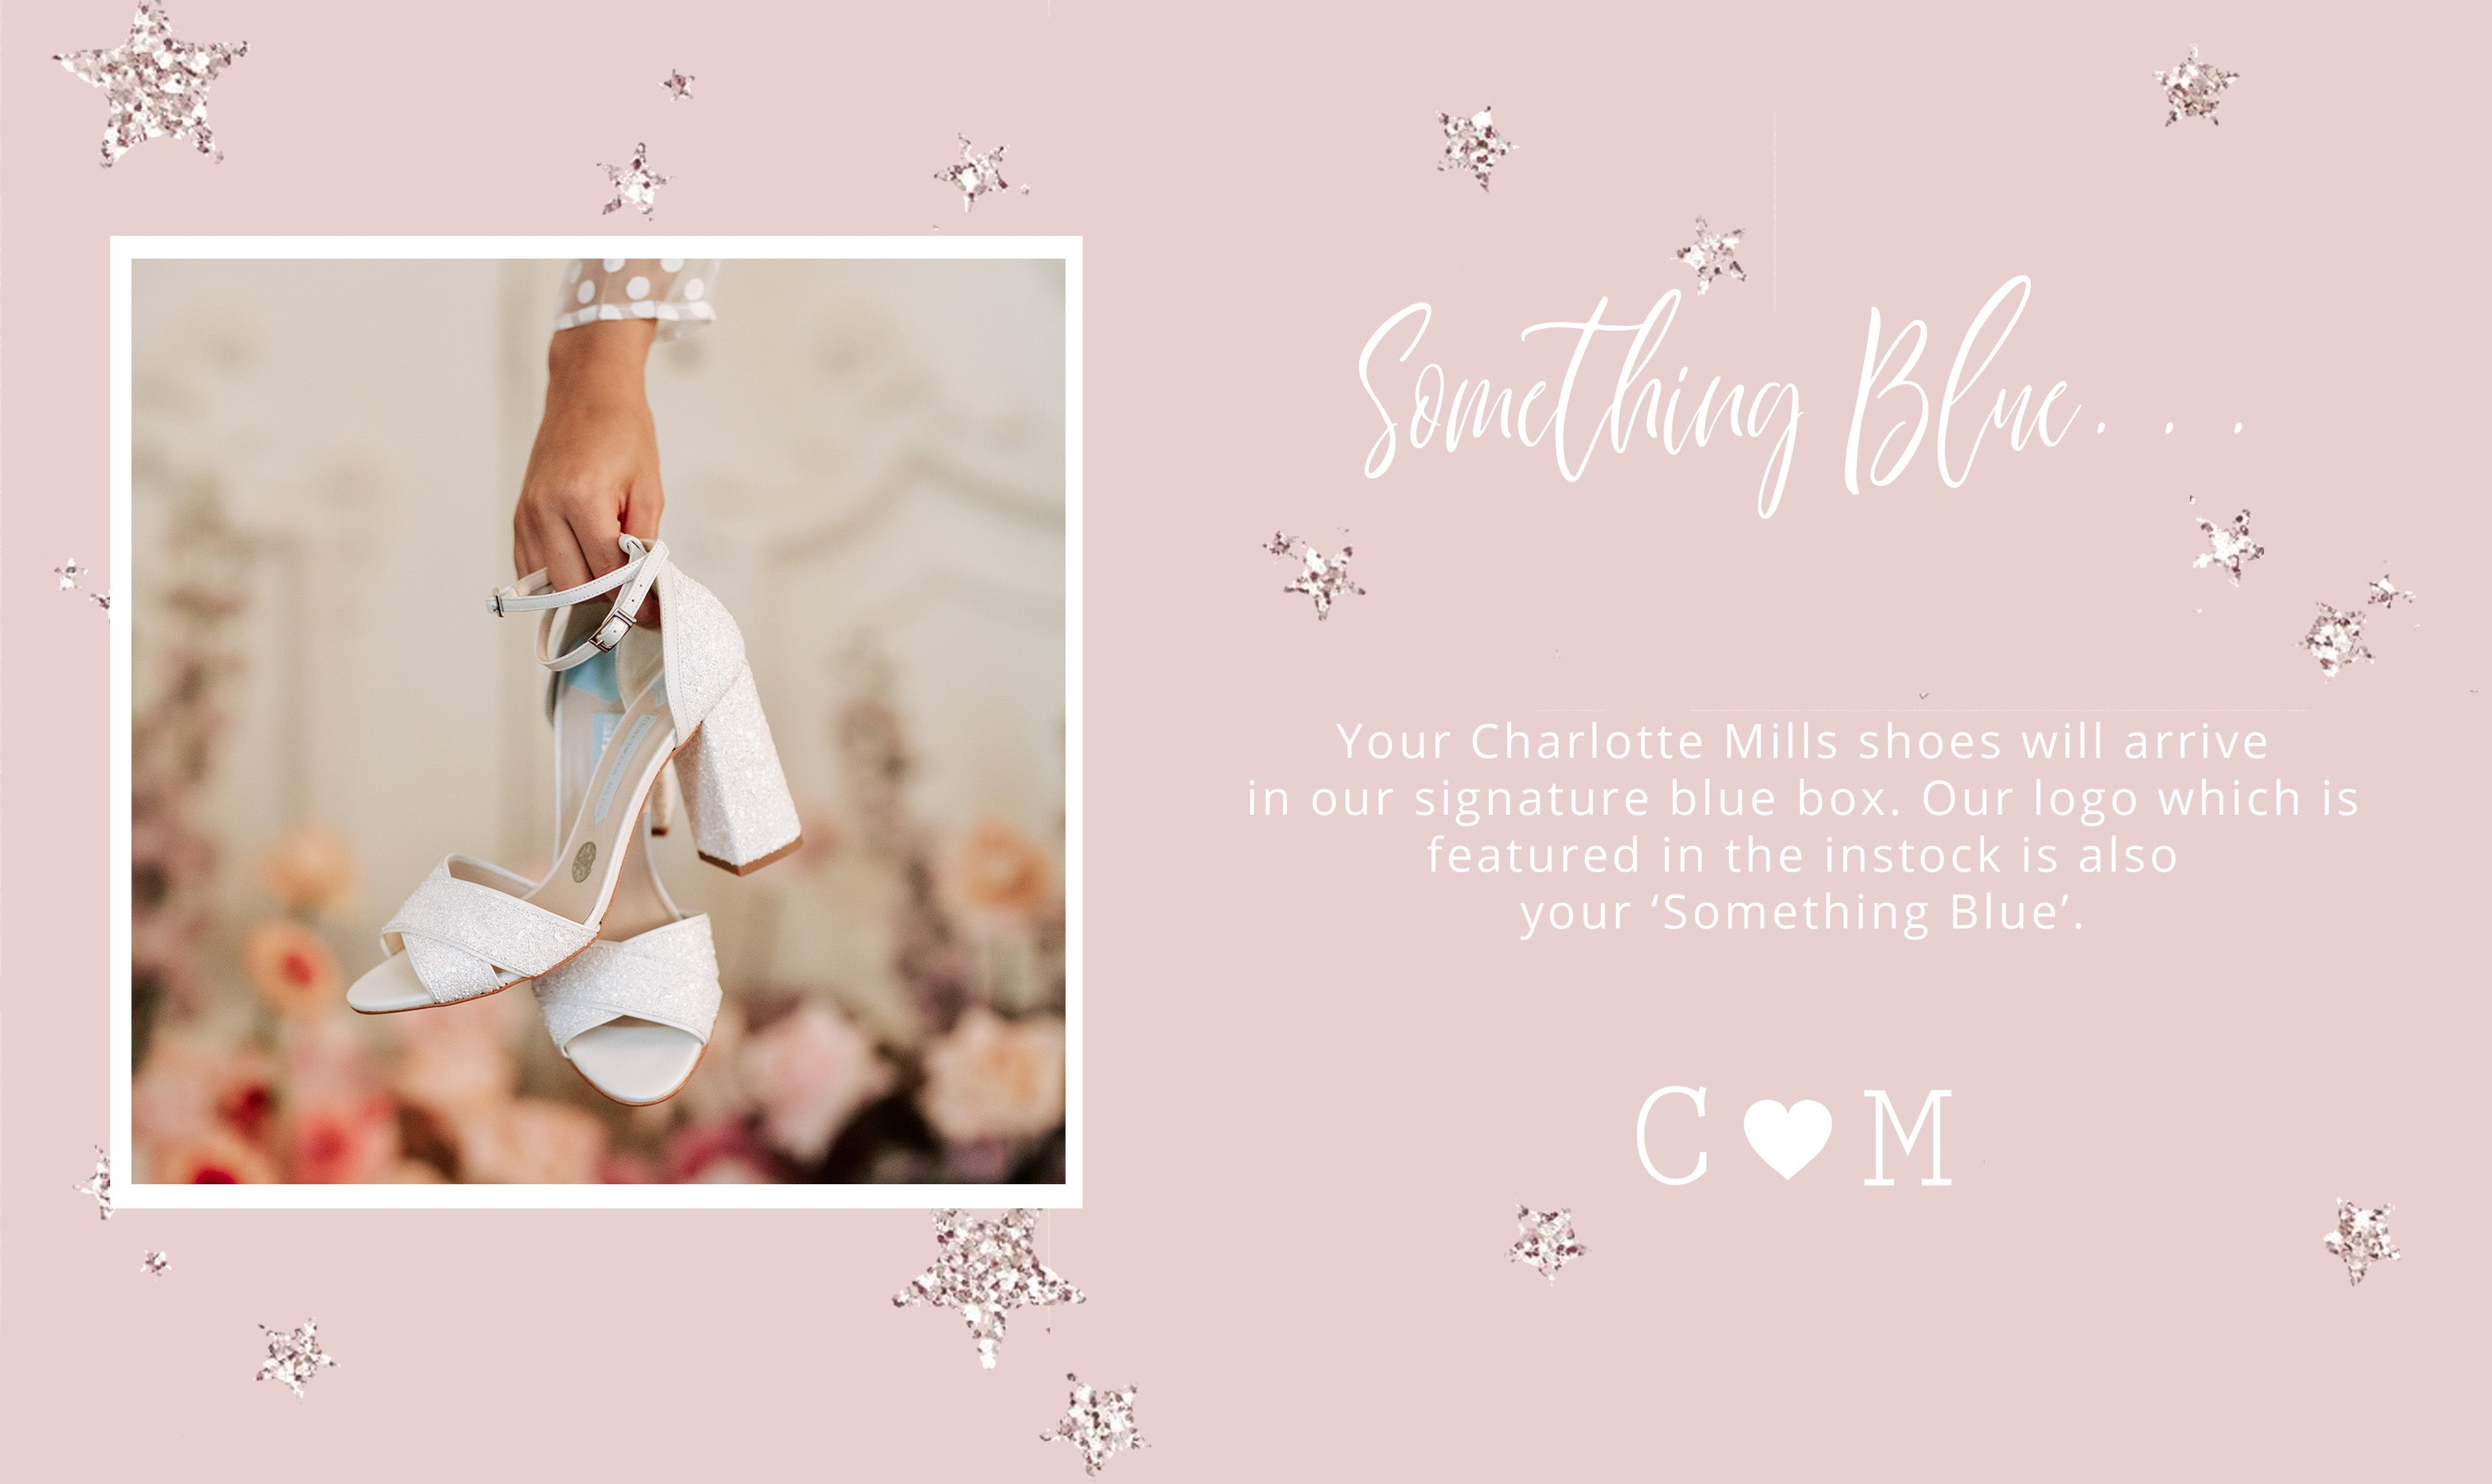 something blue - charlotte mills shoes